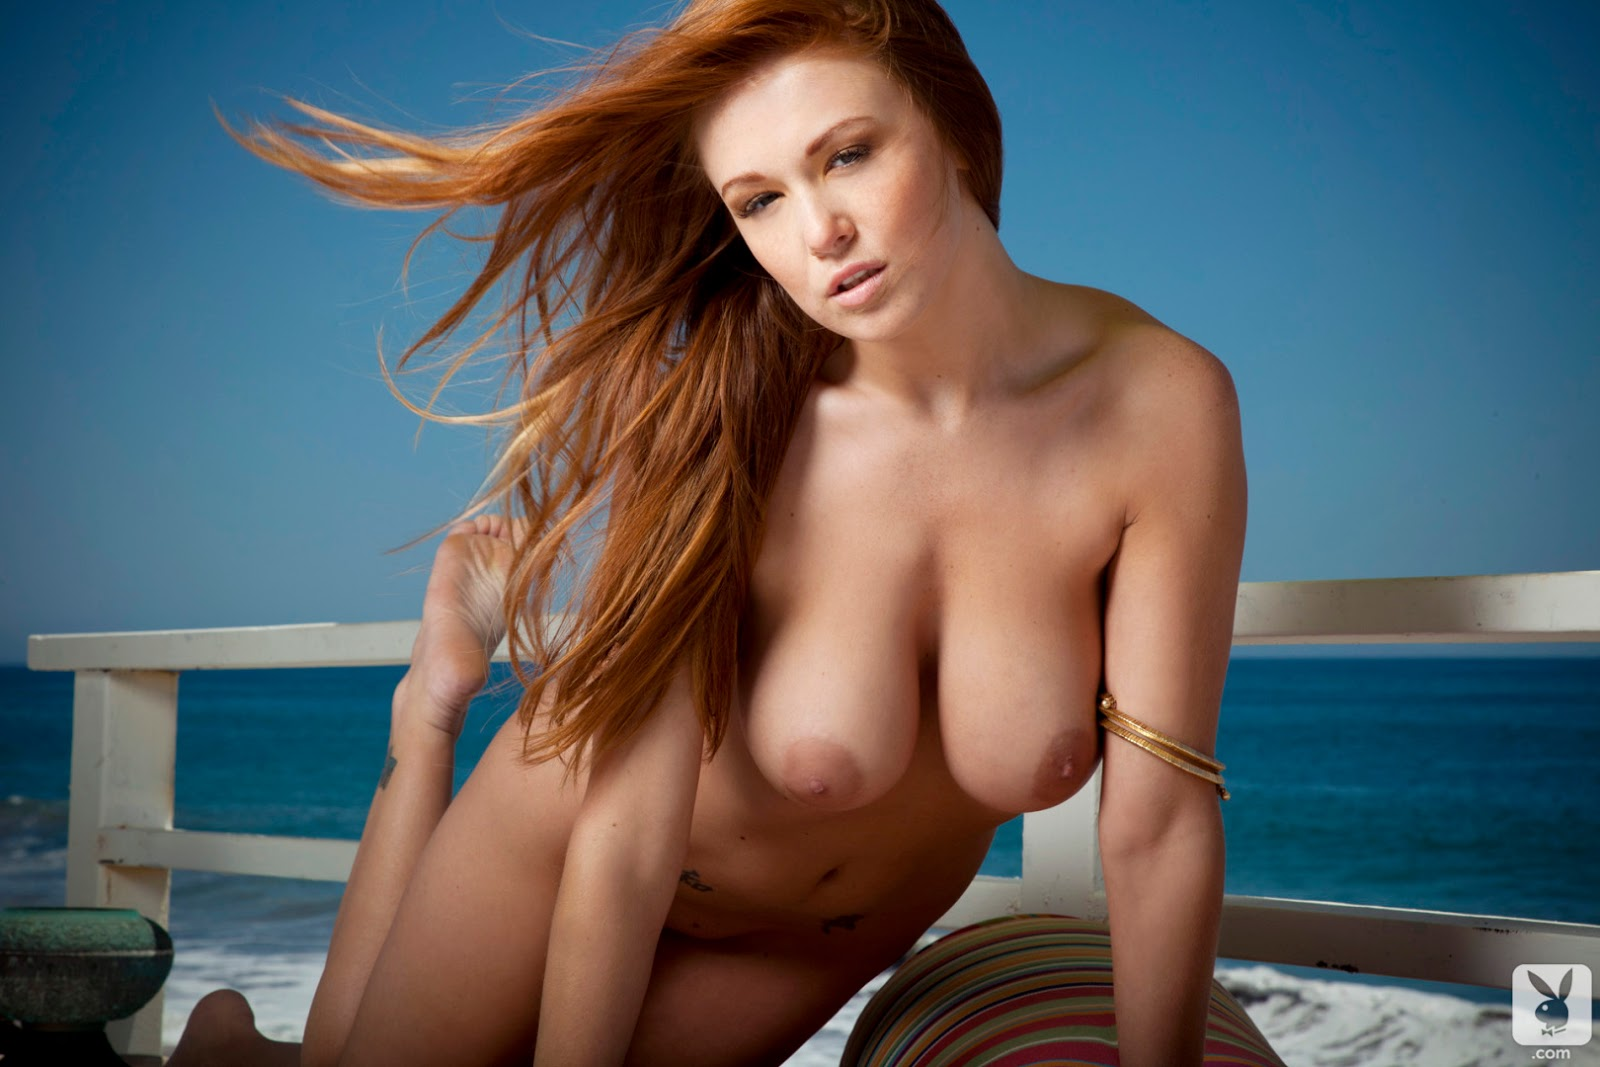 Martina the hot croatian continues her hot show 10